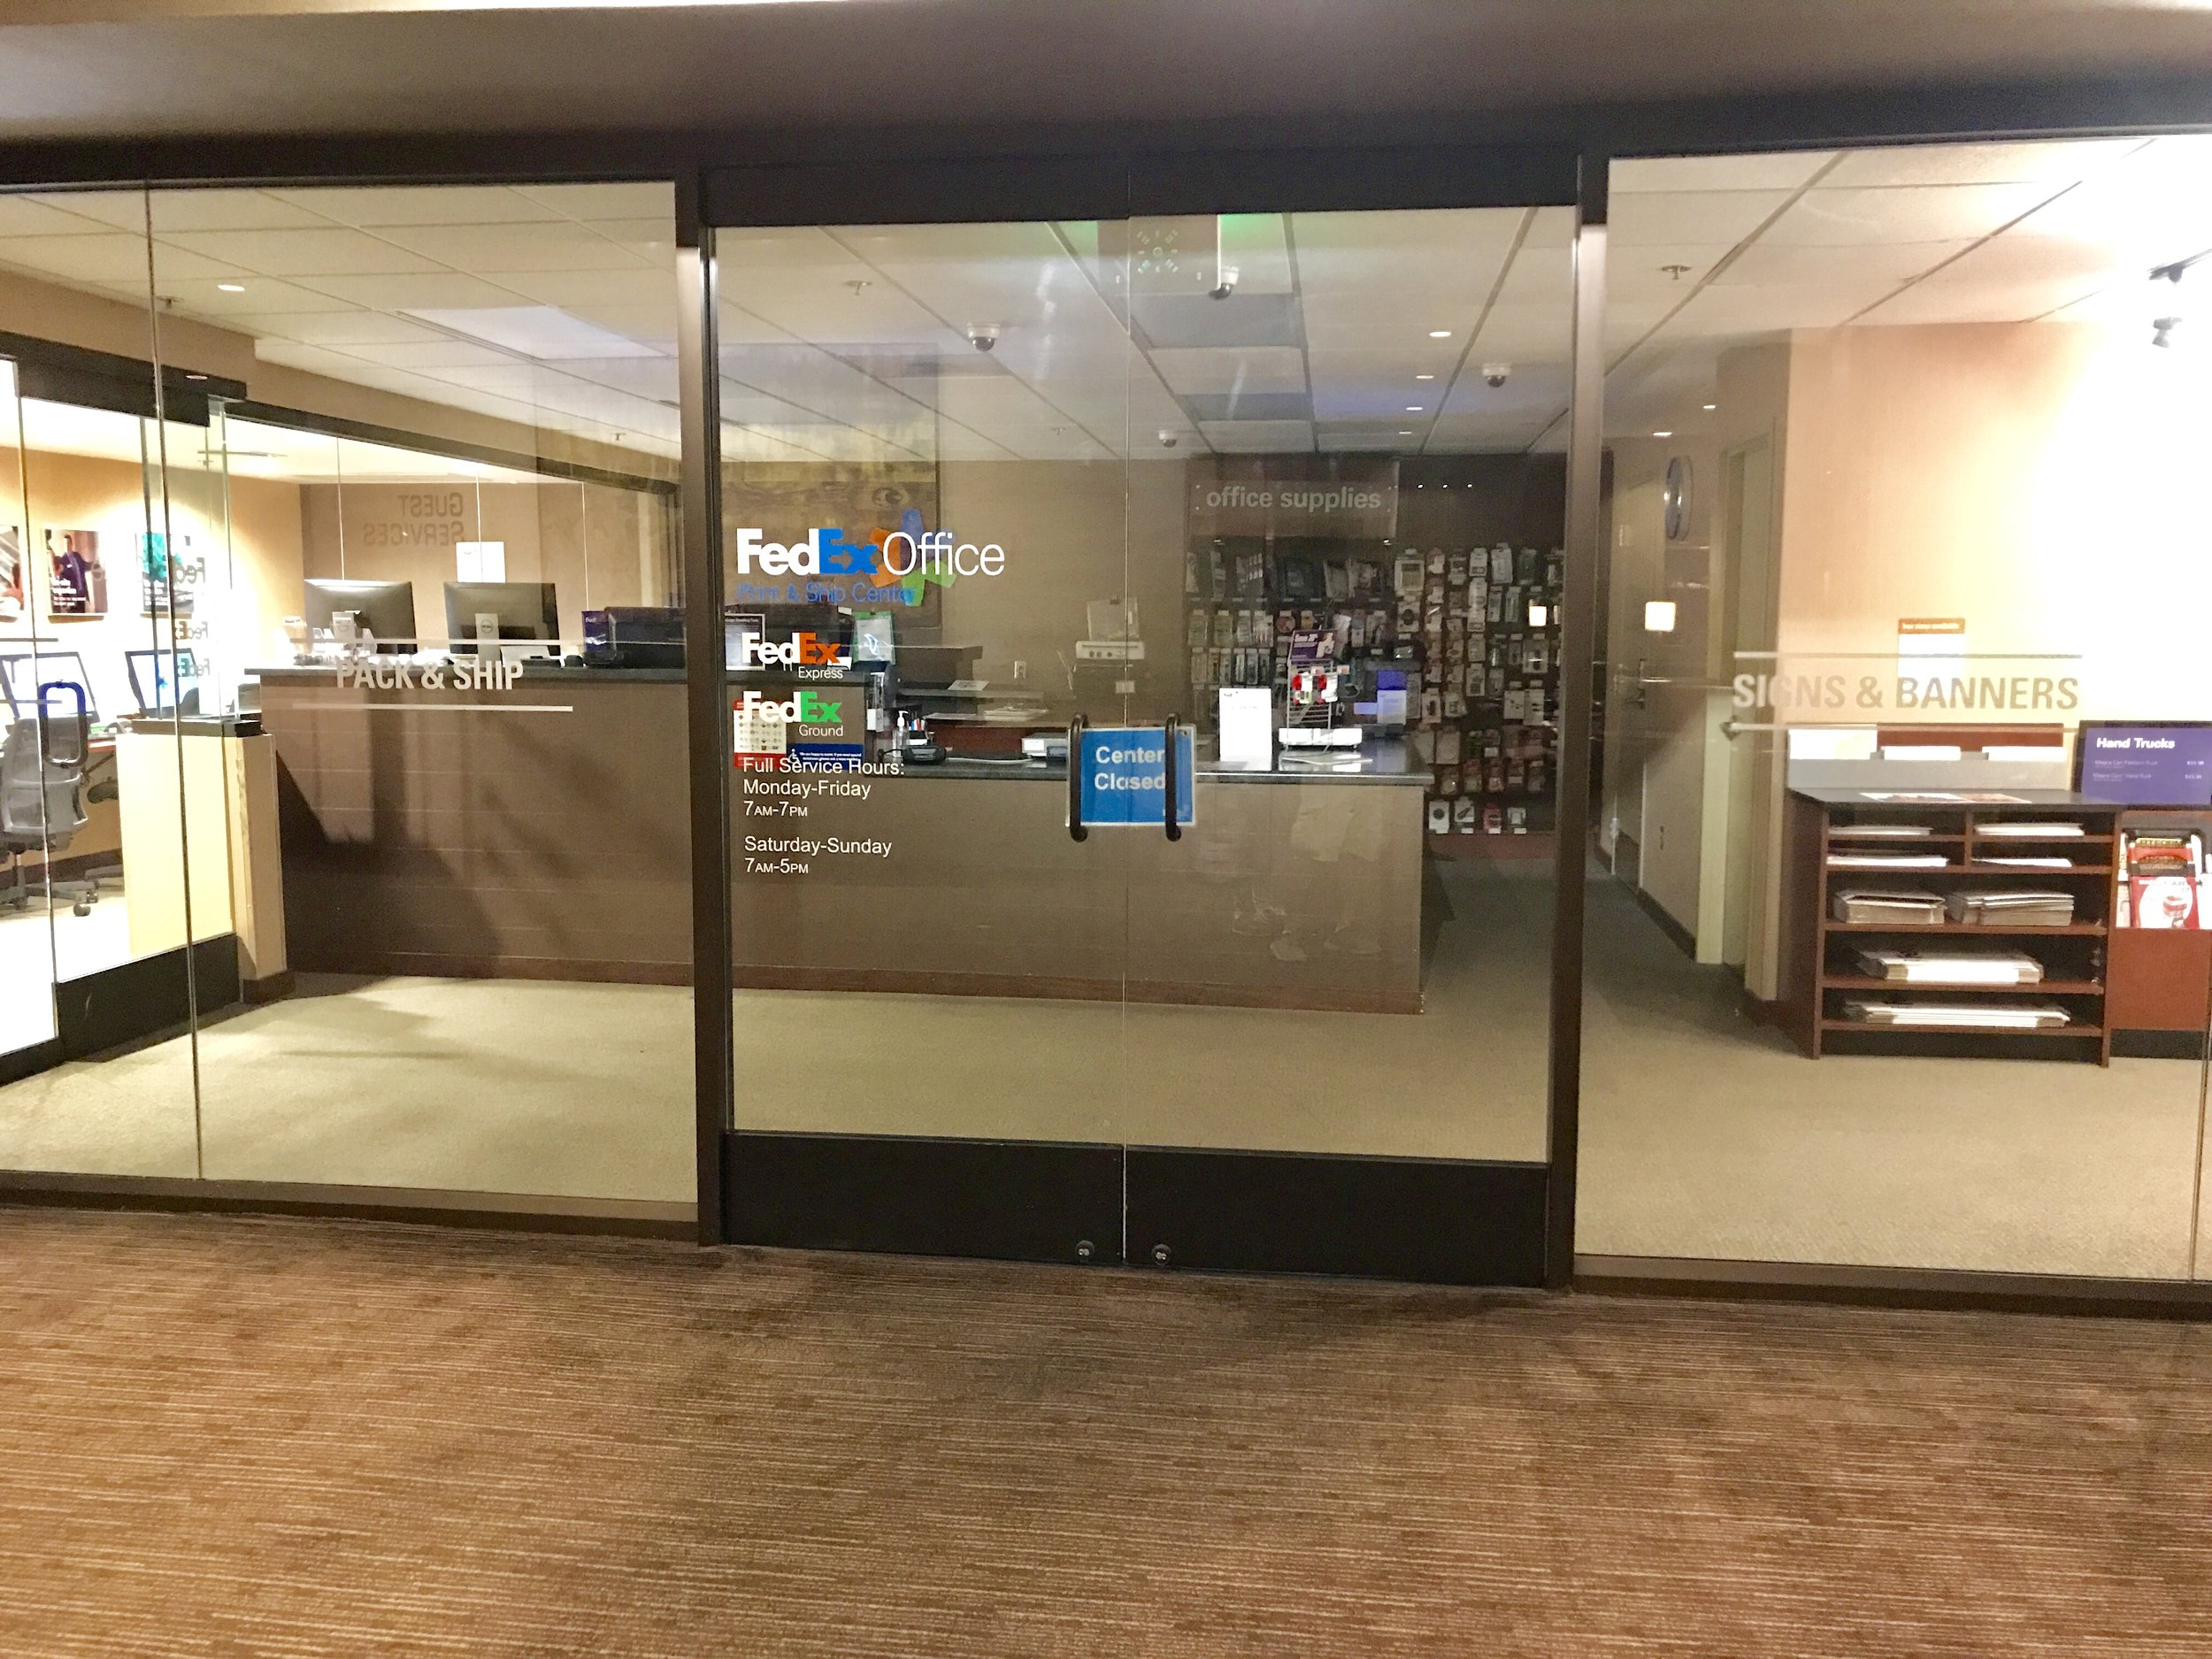 Dont stress with trying to pack all those extra impulse gifts in your luggage. Take advantage of the fedex office shipping center in the lobby.